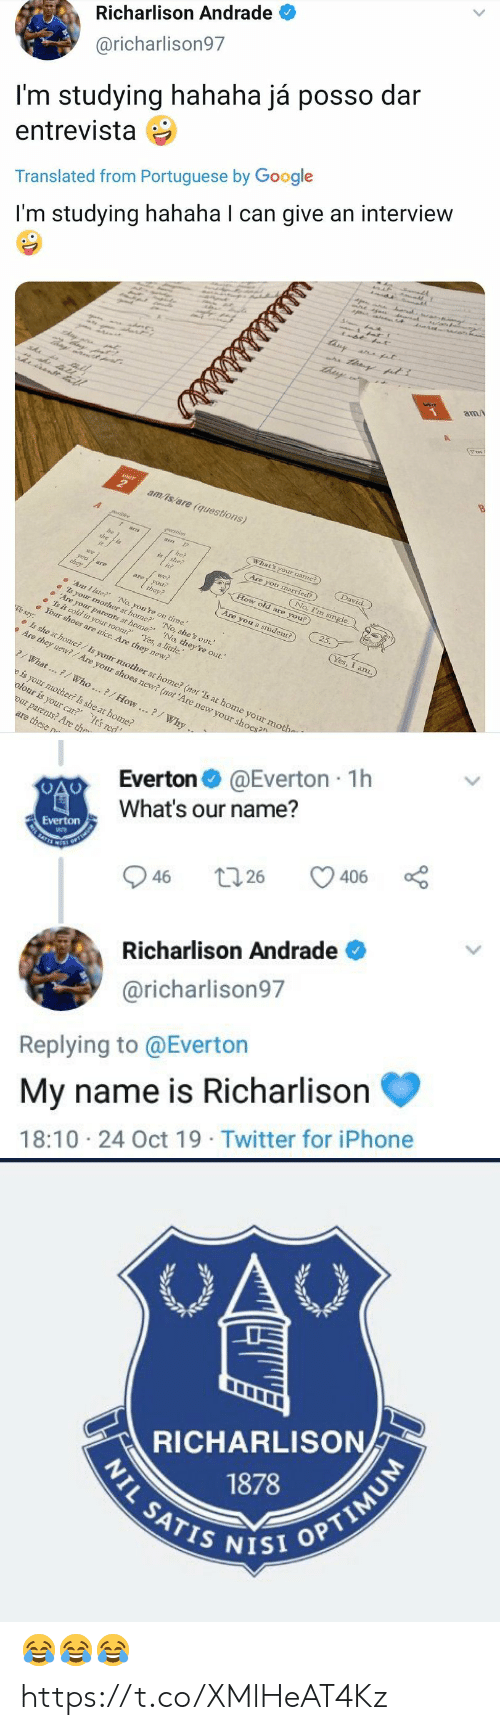 """Everton, Google, and Iphone: Richarlison Andrade  @richarlison97  I'm studying hahaha já posso dar  entrevista  Translated from Portuguese by Google  r  I'm studying hahaha I can give an interview  tisy  a at  am/  UNIT  am/is/are (questions)  A  What's your namme?)  am  David.  he?  she?  Are you married?)  is  No, I'm single  we  How old are you?  nai  aoyou  they?  they  25.  Are you a student?)  Ar I late? No, you're on time.  s your mother at home? No, she's out.  Are yoar parents at home?' 'No, they're out.""""  Is it cold in your room? Yes, a little.  Your shoes are mice. Are they new?  Yes, I anz.  We say:  Is she at home?/Is your mother at home? (not 'Is at home your mothe  Are they new?/Are your shoes new? (not 'Are new your shoes?  What...7/ Who..?/How..?/Why ..  e is your mother? Is she at home?  olour is your car? It's red  our parents? Are the  are these n  है ह।   @Everton 1h  Everton  What's our name?  Everton  SATES  406  26  46  Richarlison Andrade  @richarlison97  Replying to @Everton  My name is Richarlison  18:10 24 Oct 19 Twitter for iPhone  >   OAC  RICHARLISON  1878  NIL SATIS NISI OPTIMUM 😂😂😂 https://t.co/XMlHeAT4Kz"""